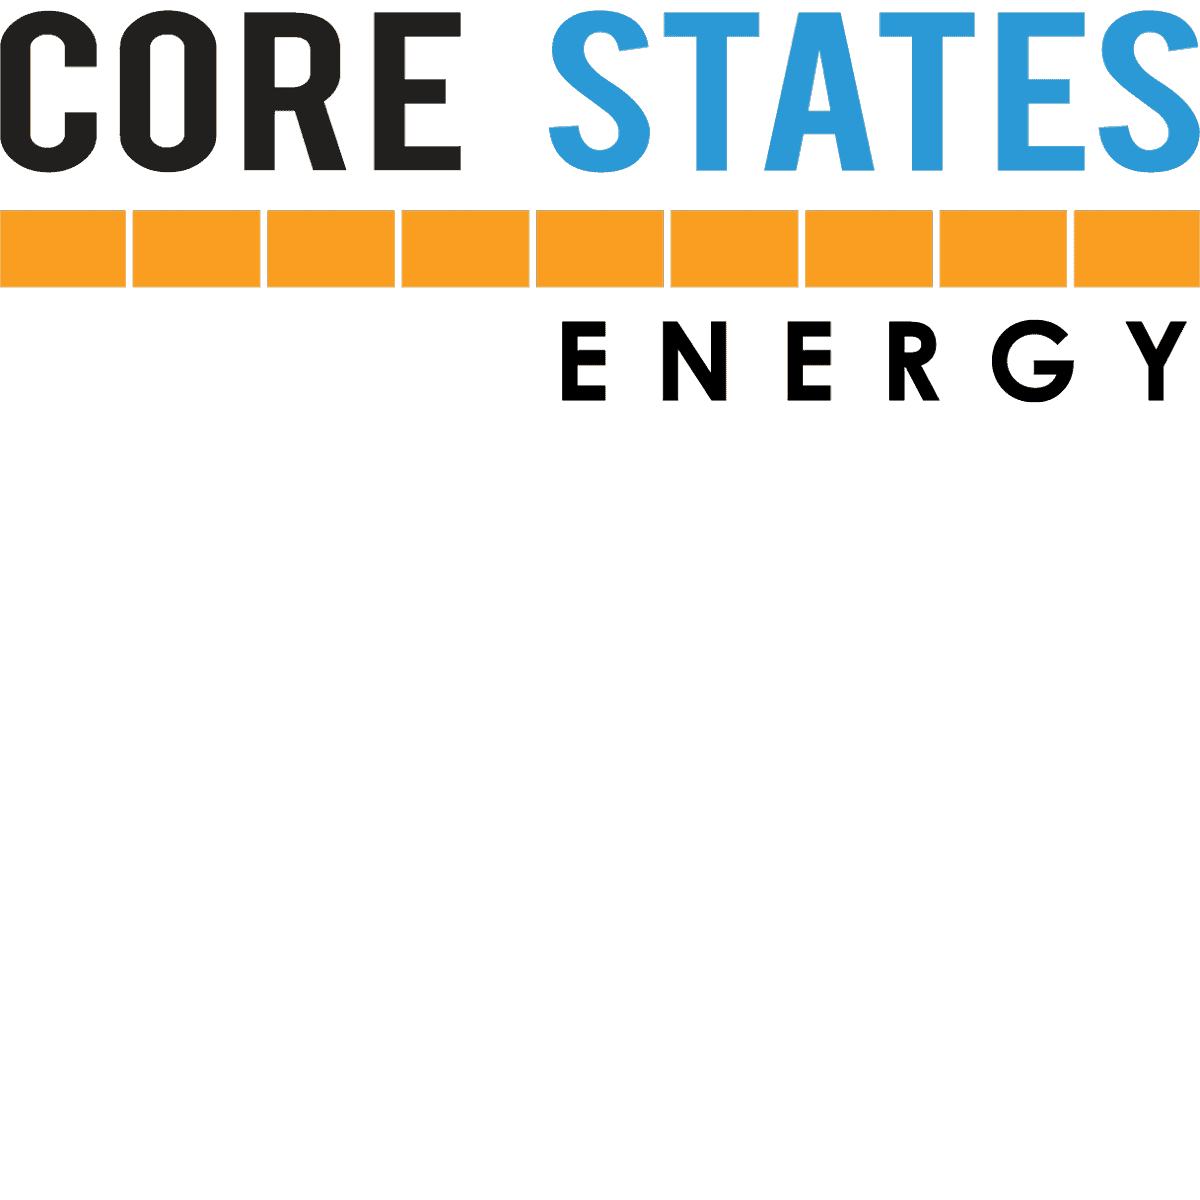 CoreStatesEnergy_logo-square2